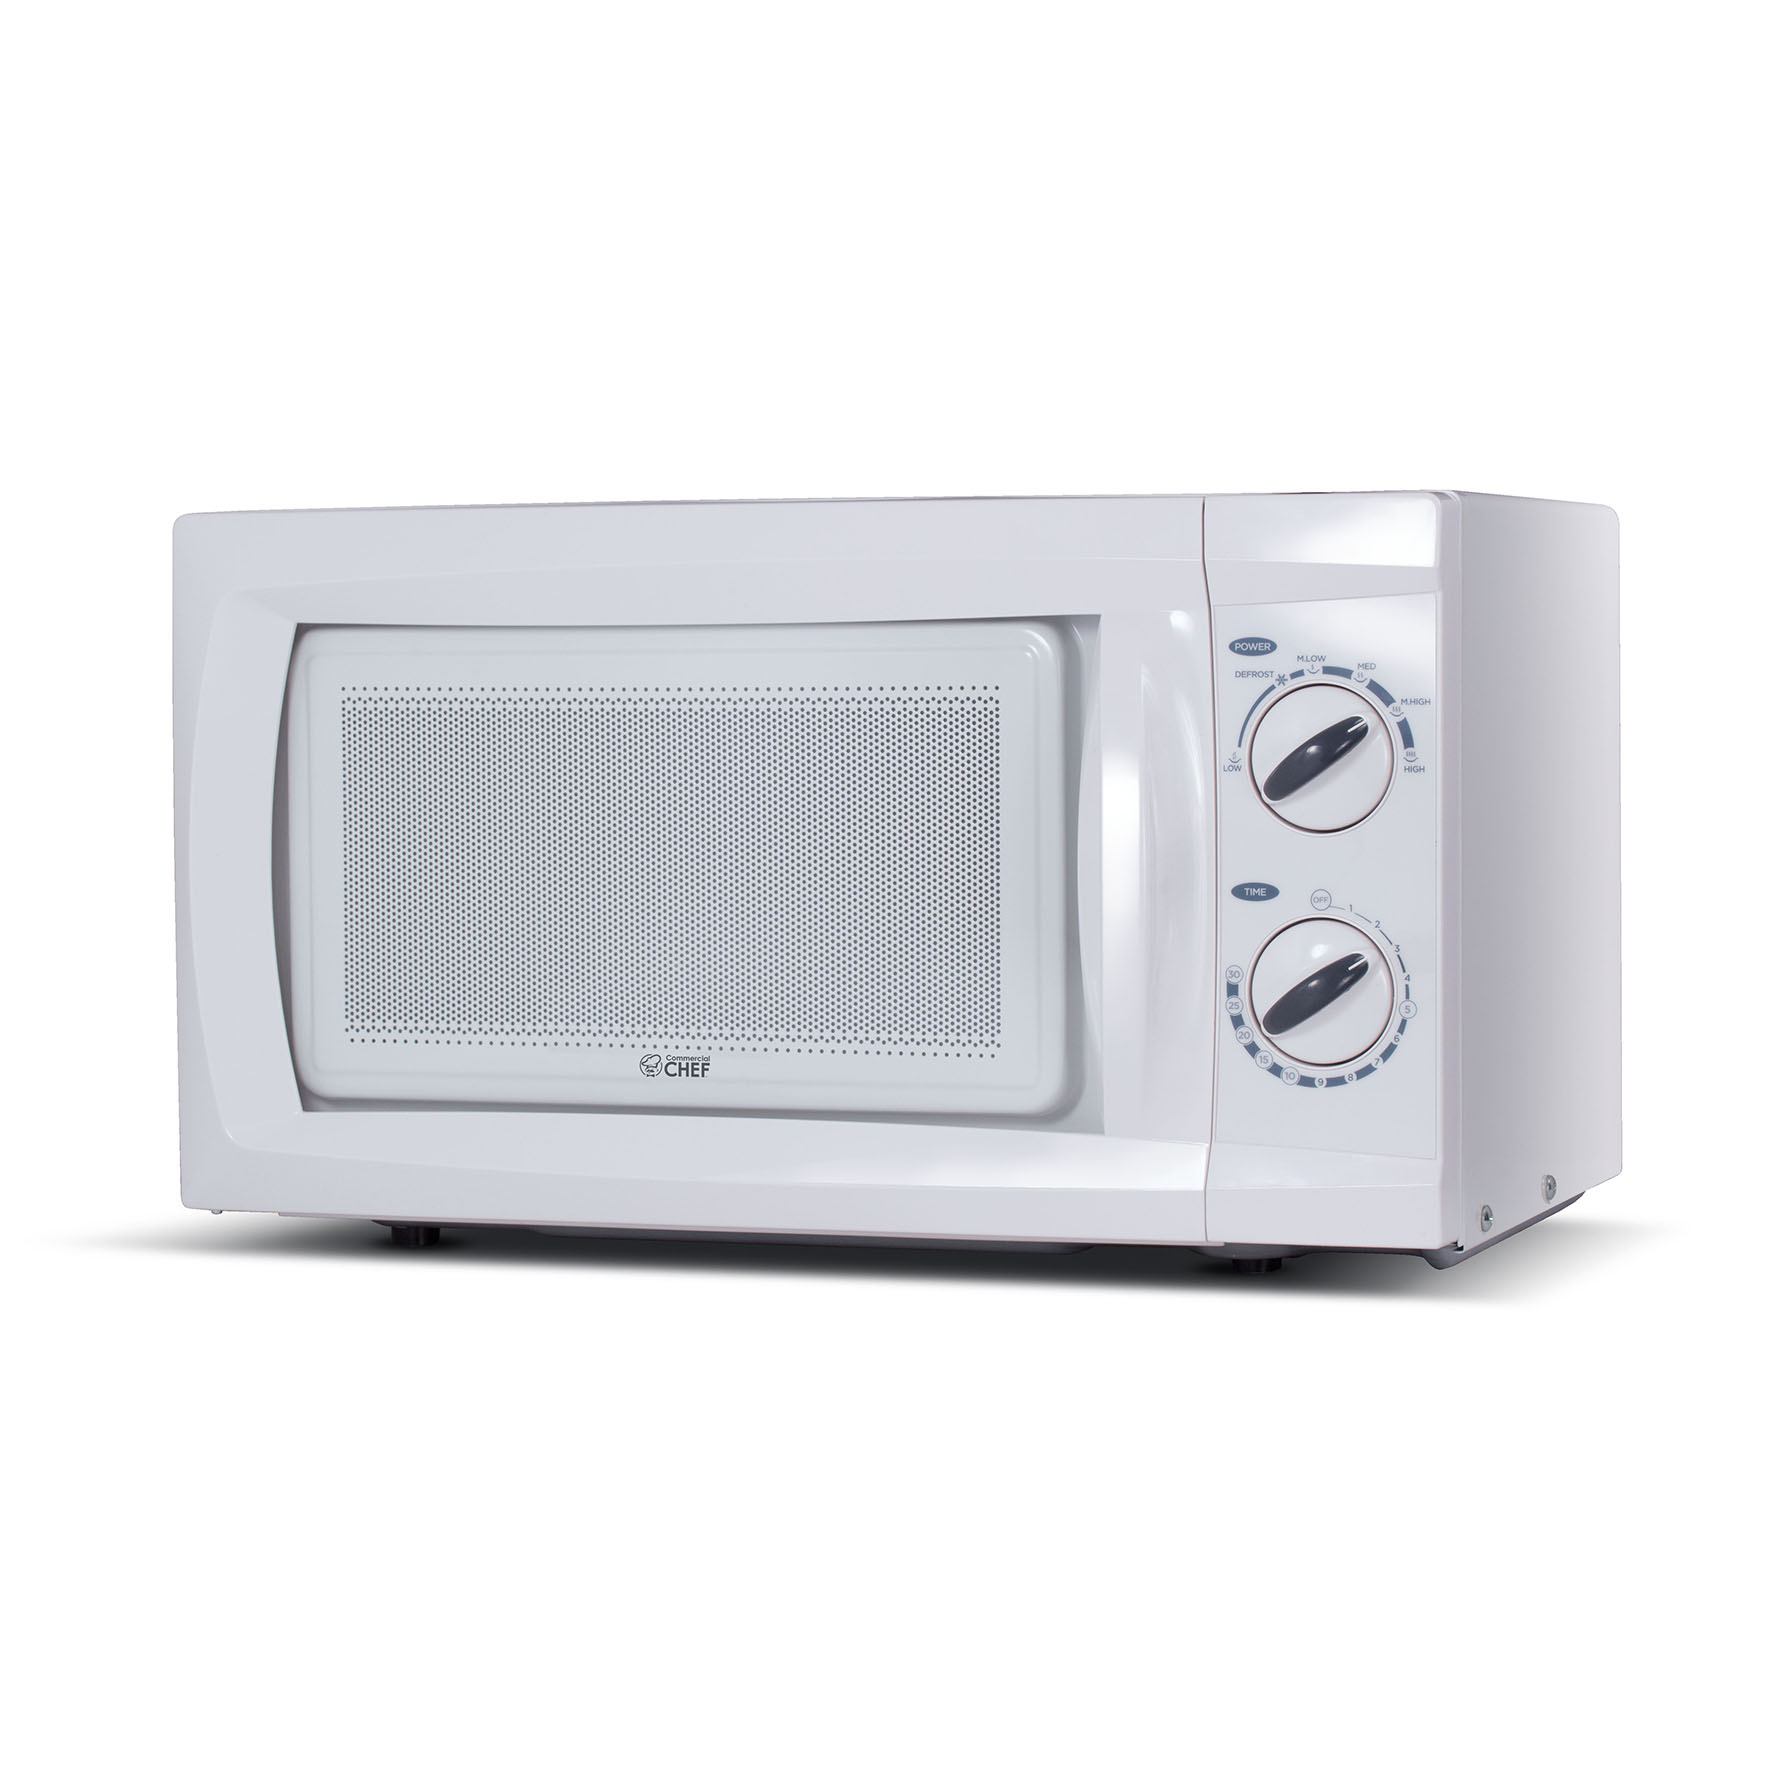 commercial chef chm660w 0 6 cubic feet microwave oven 600 watt counter top rotary white